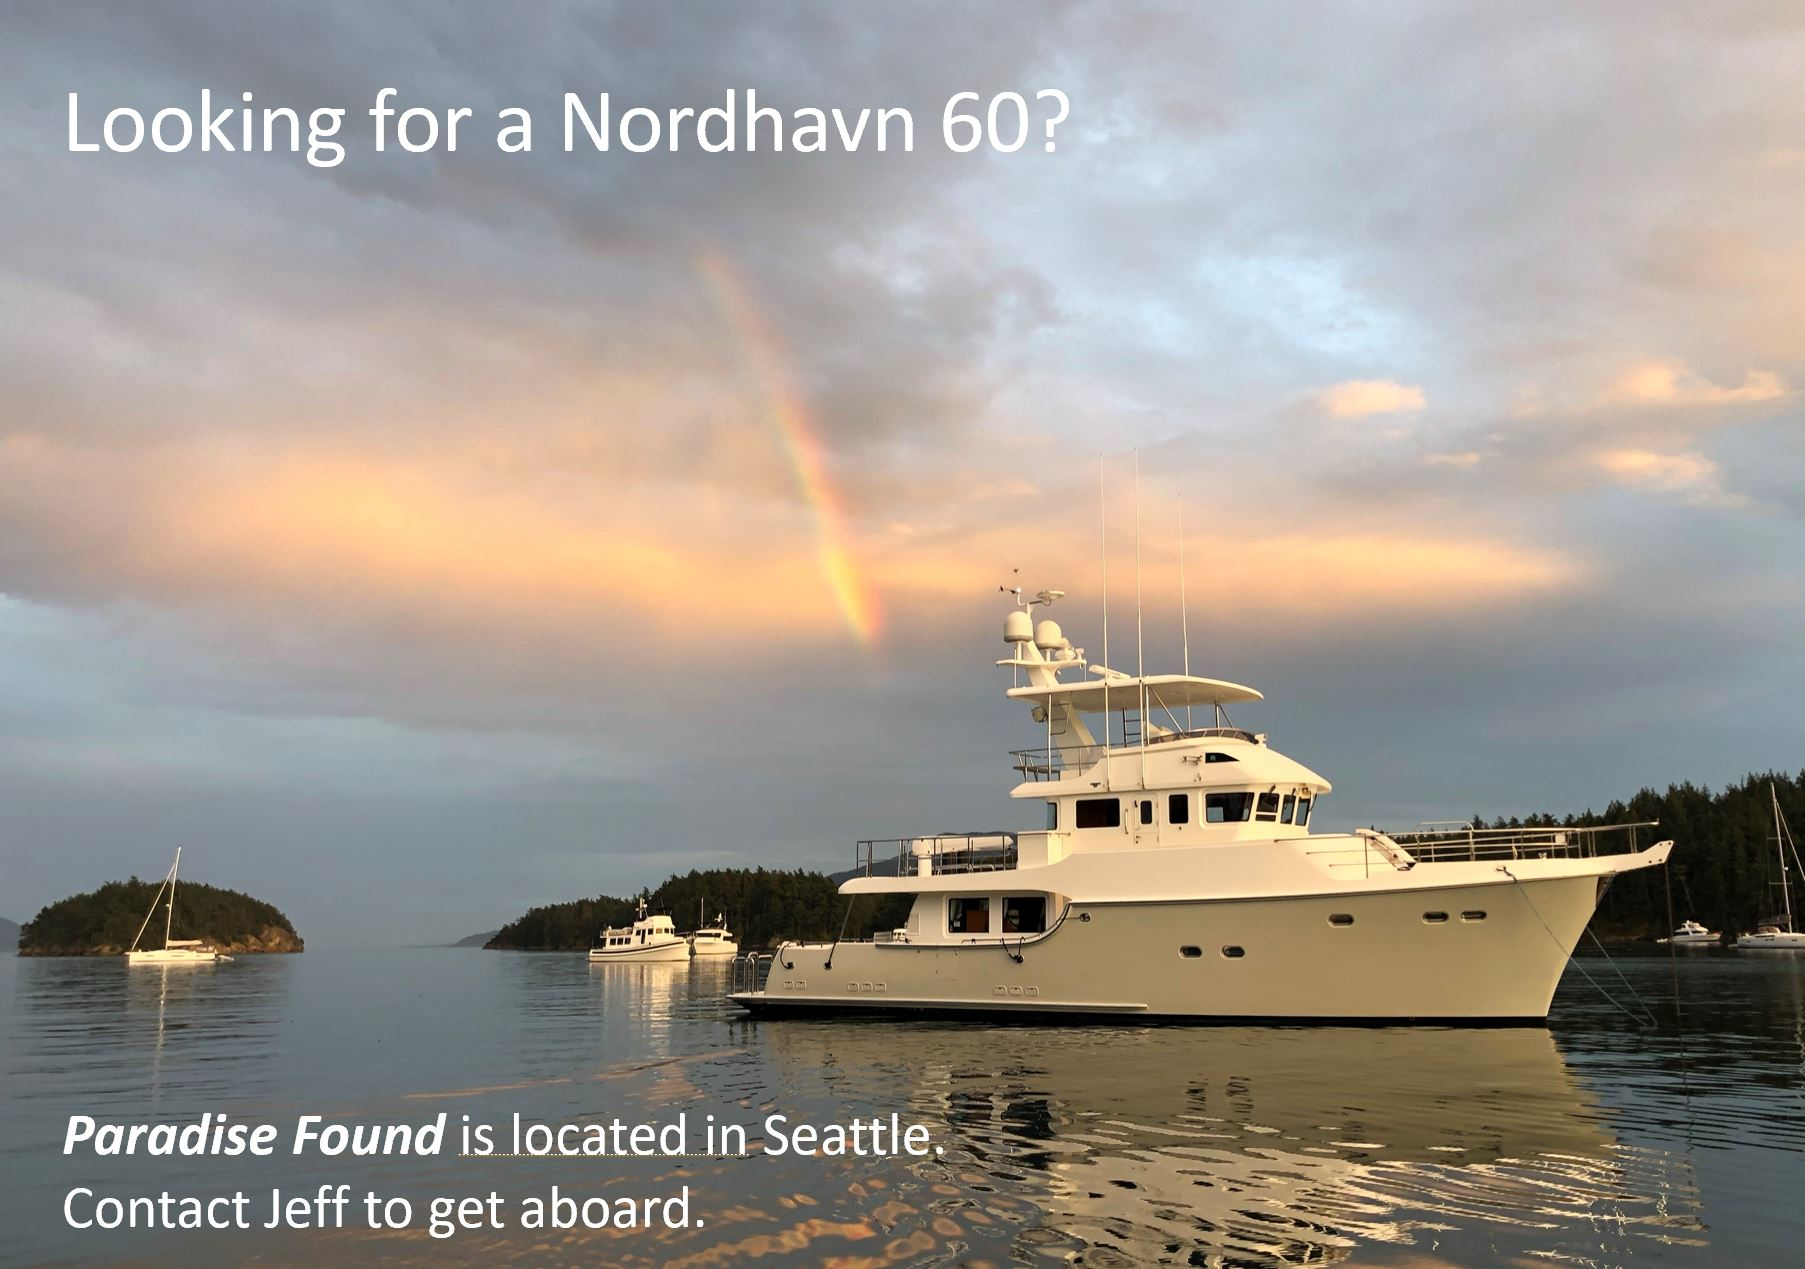 Looking for a Nordhavn 60?